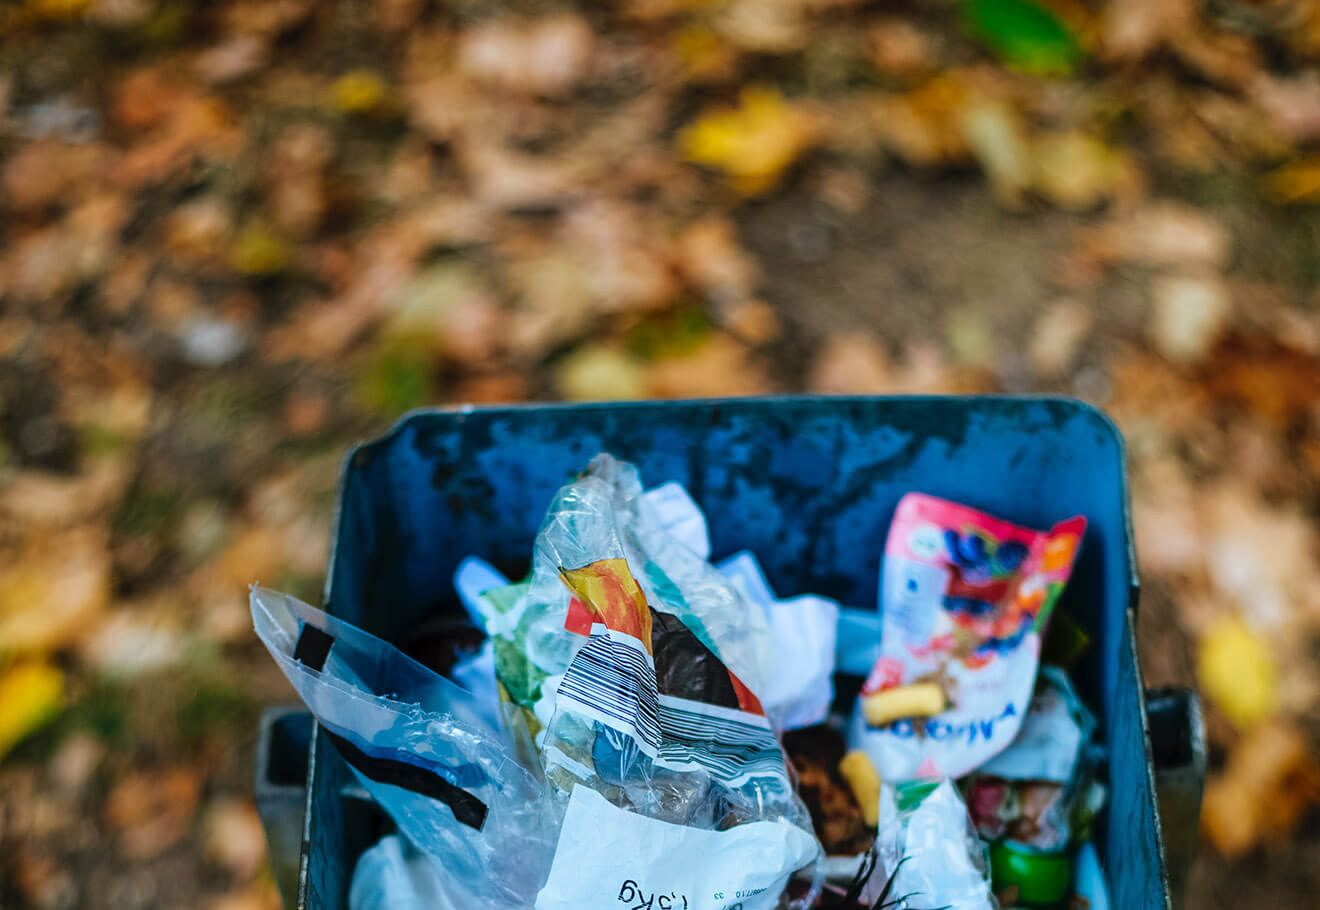 Conduct A Household Waste Survey